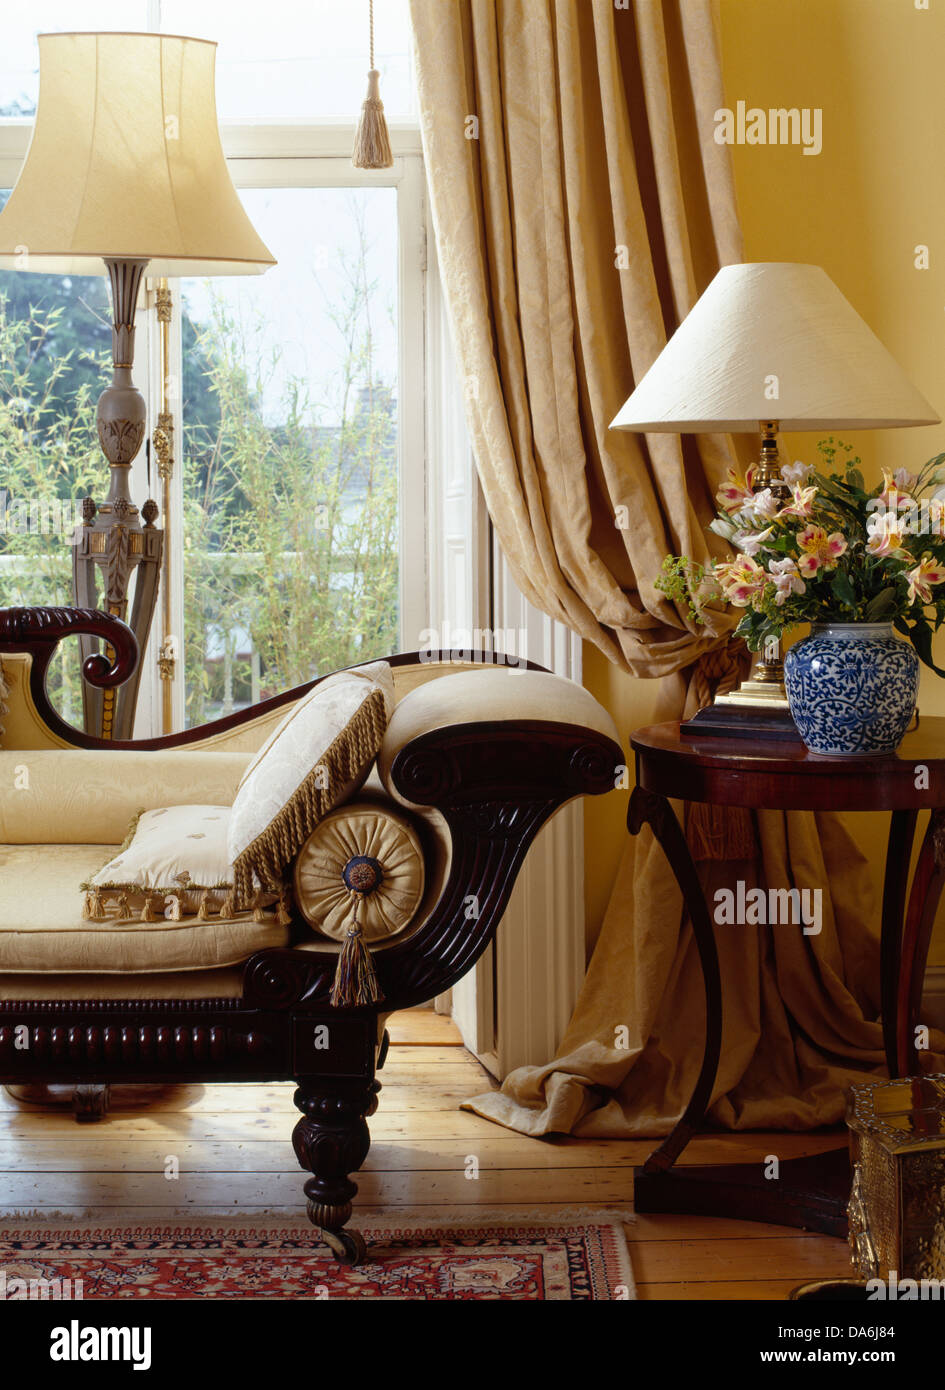 Vintage Chaise Longue And Antique Side Table In Front Of Window With Cream  Curtains In Traditional Living Room